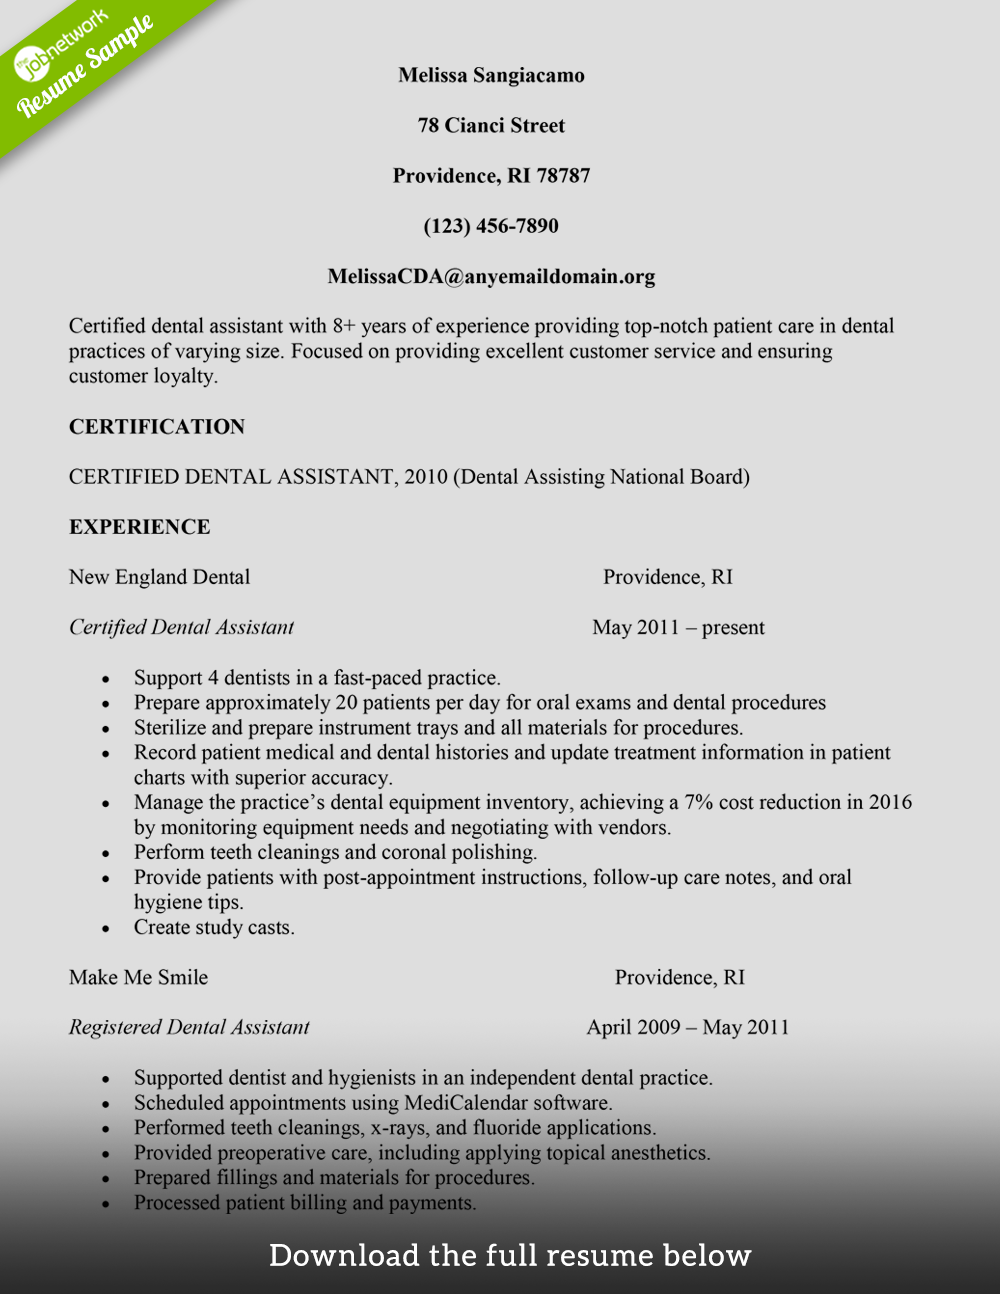 dental assistant resume - Dental Assistant Resume Samples